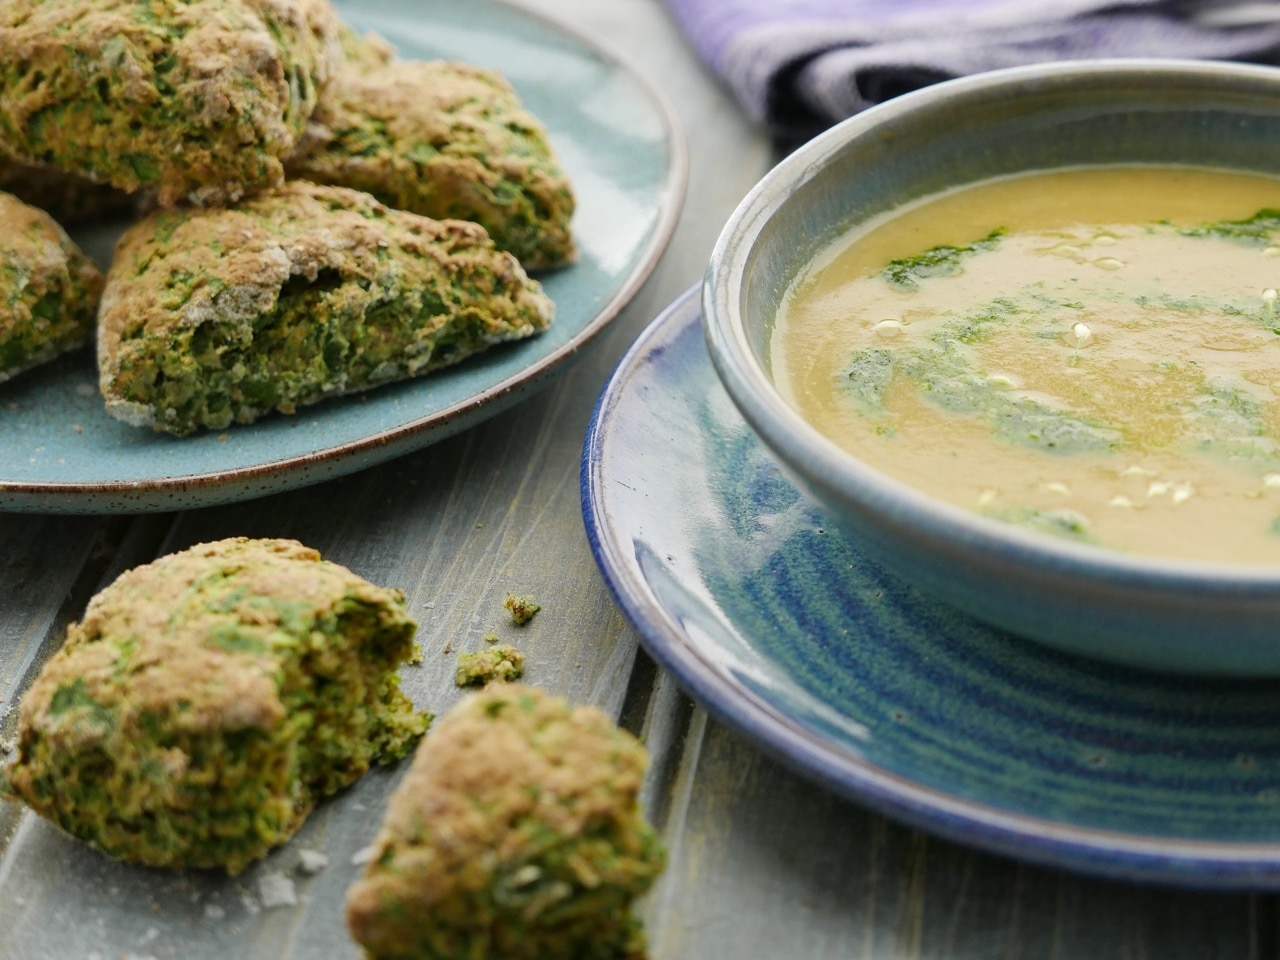 Colcannon Soup with Parsley Pesto and Soda Scones